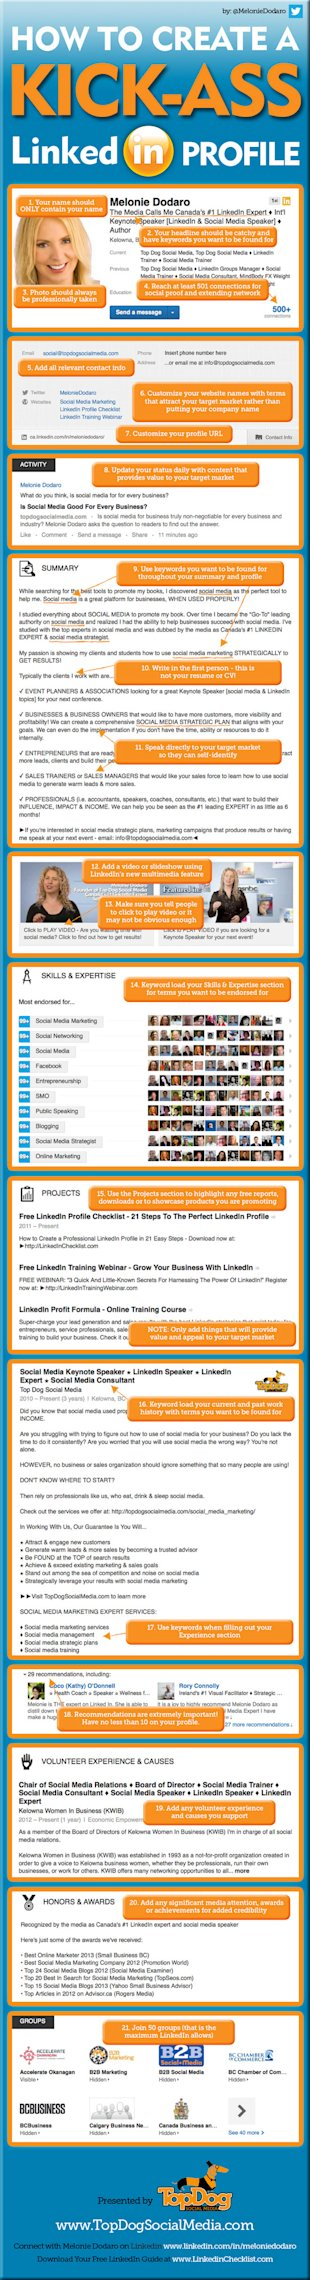 21 Steps to Create an Awesome LinkedIn Profile image How to create an awesome LinkedIn Profile